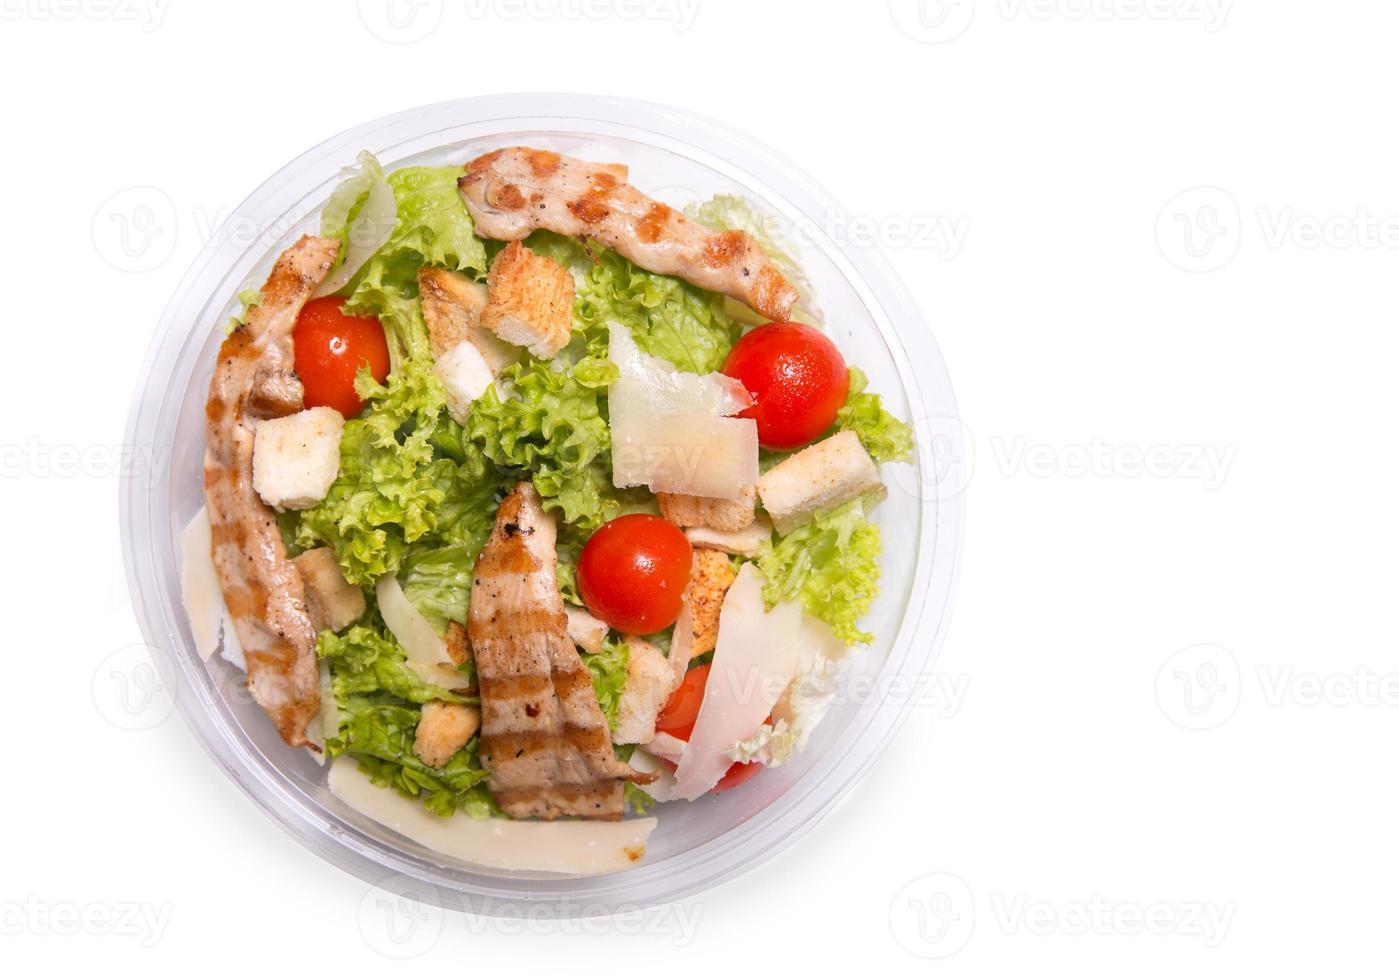 Caesar salad with grilled chicken meat, top view photo